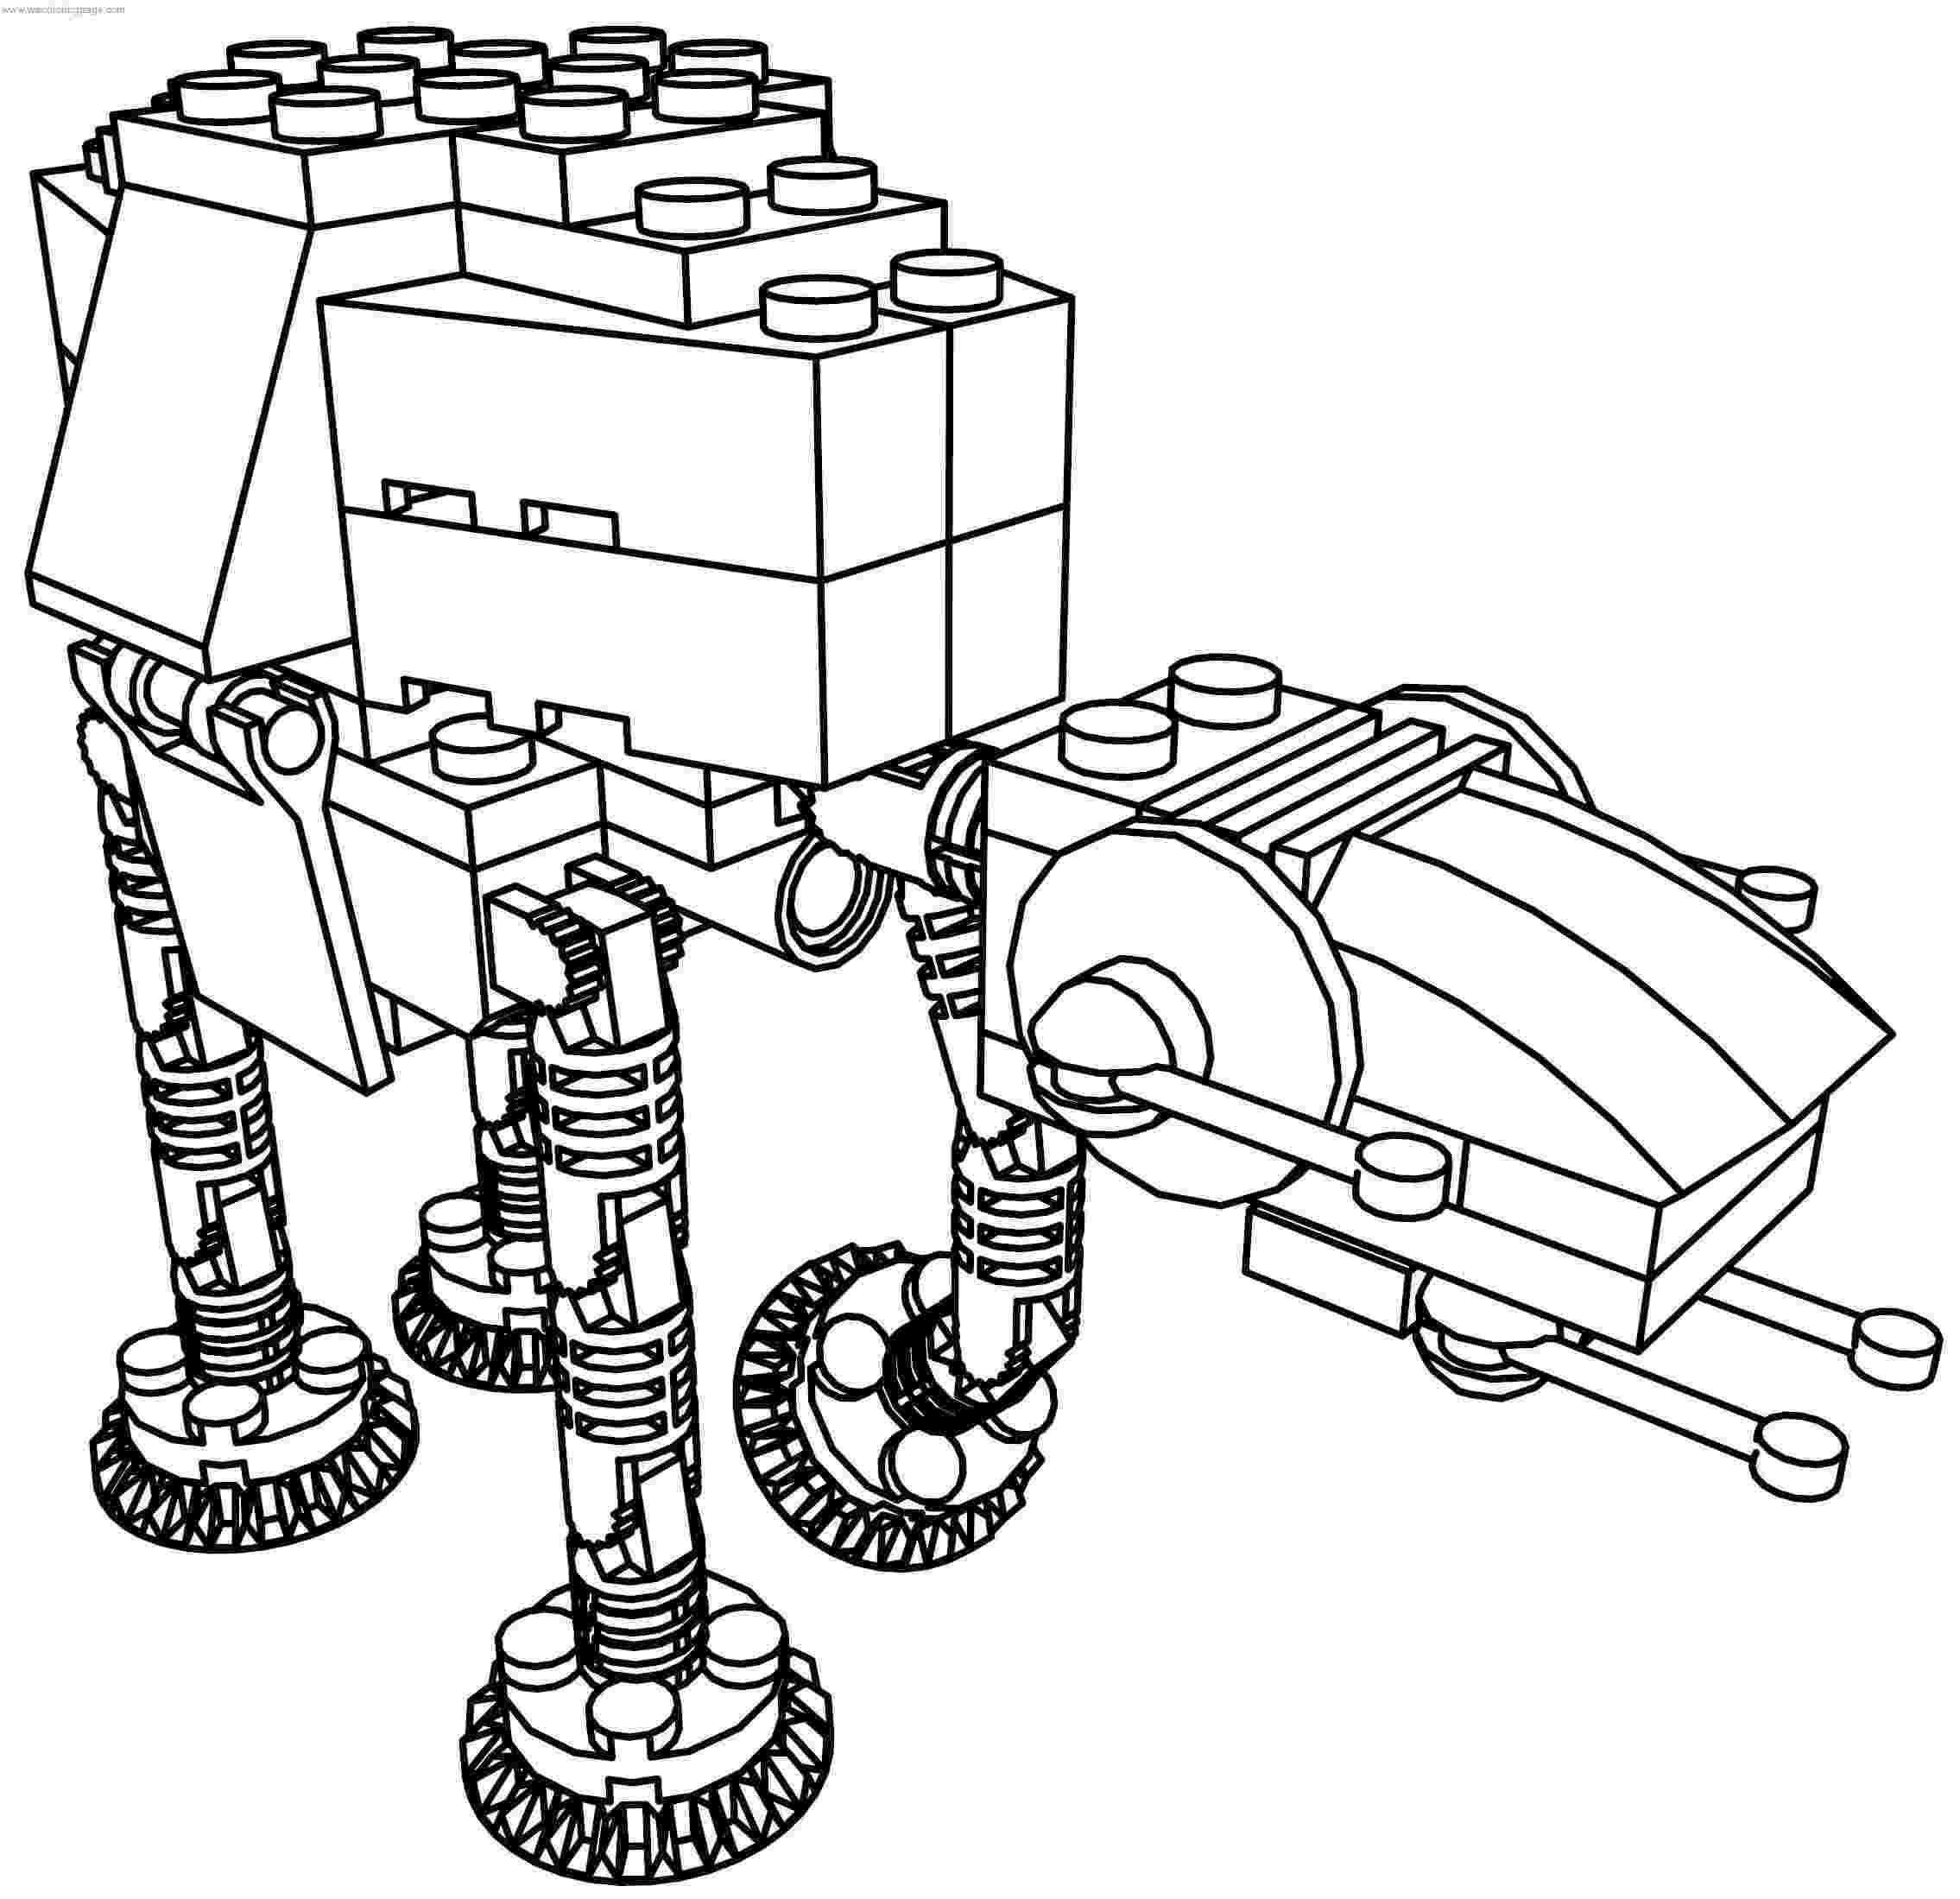 star wars coloring lego lego star wars coloring pagesjpg 1131 1600 pixels coloring wars star lego